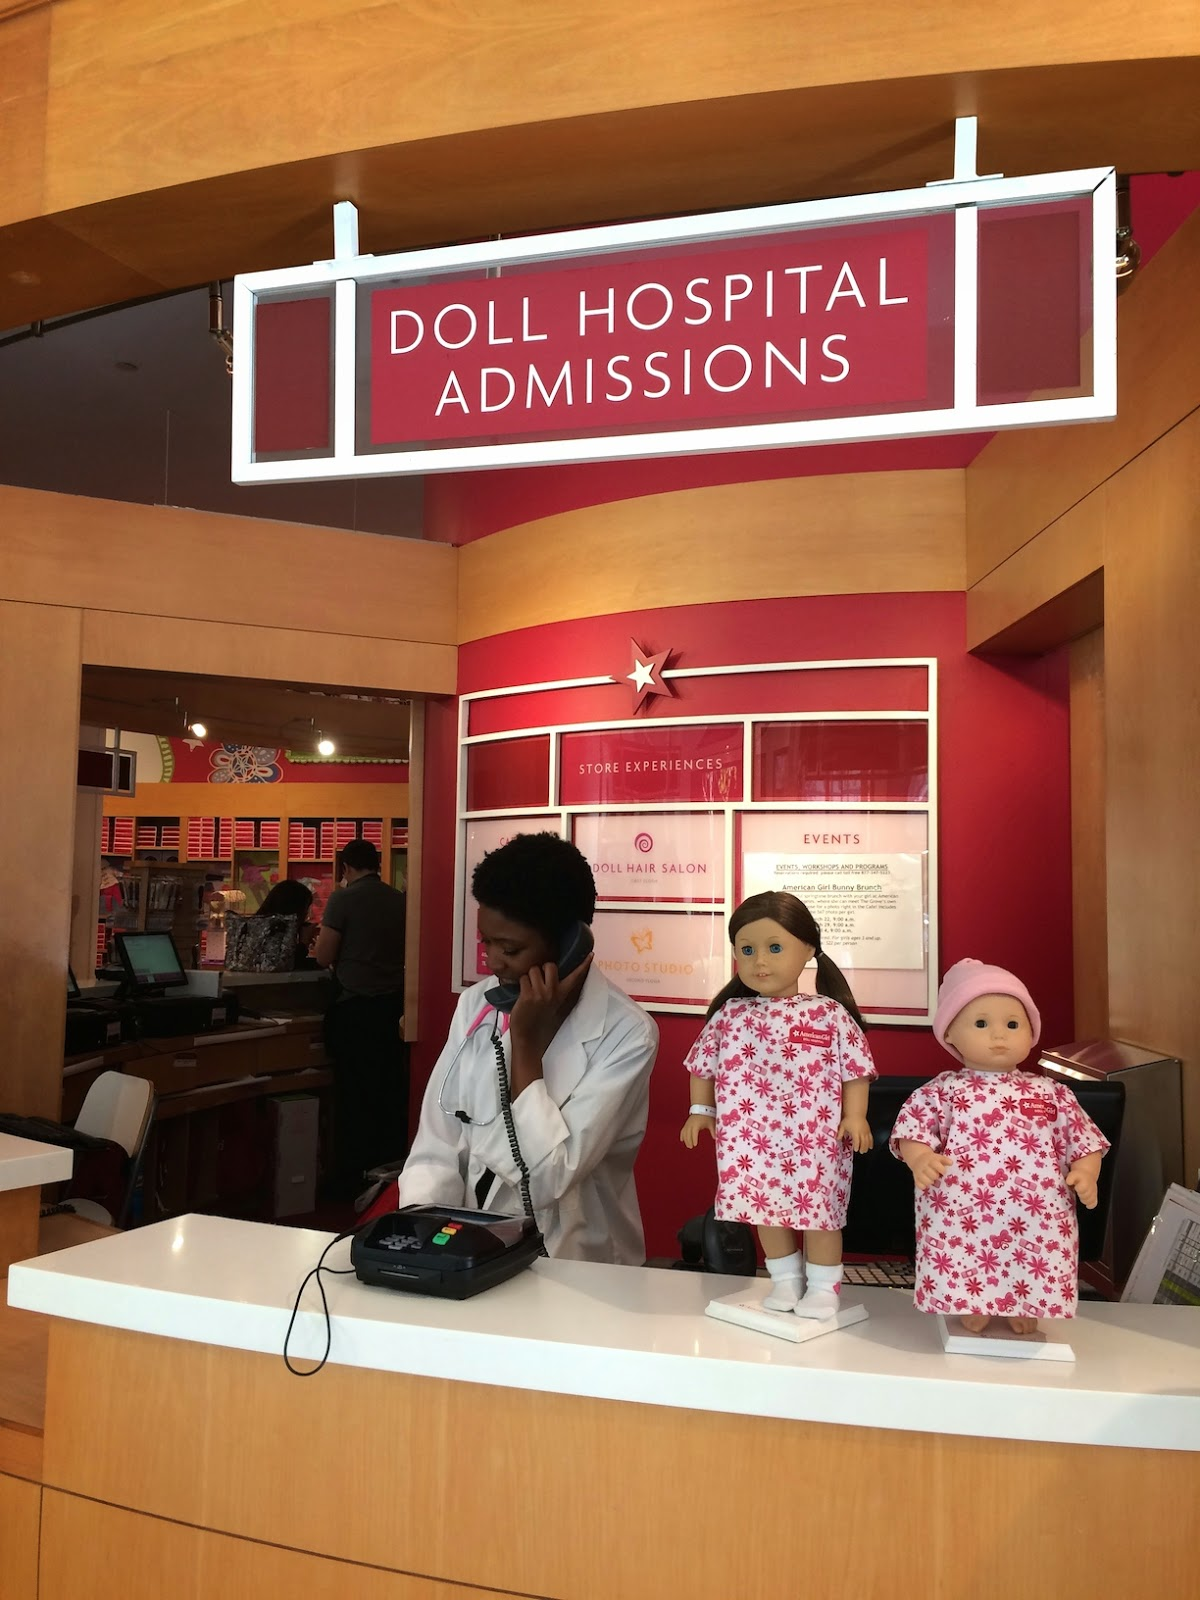 Forum on this topic: How to Fix an American Girl Doll, how-to-fix-an-american-girl-doll/